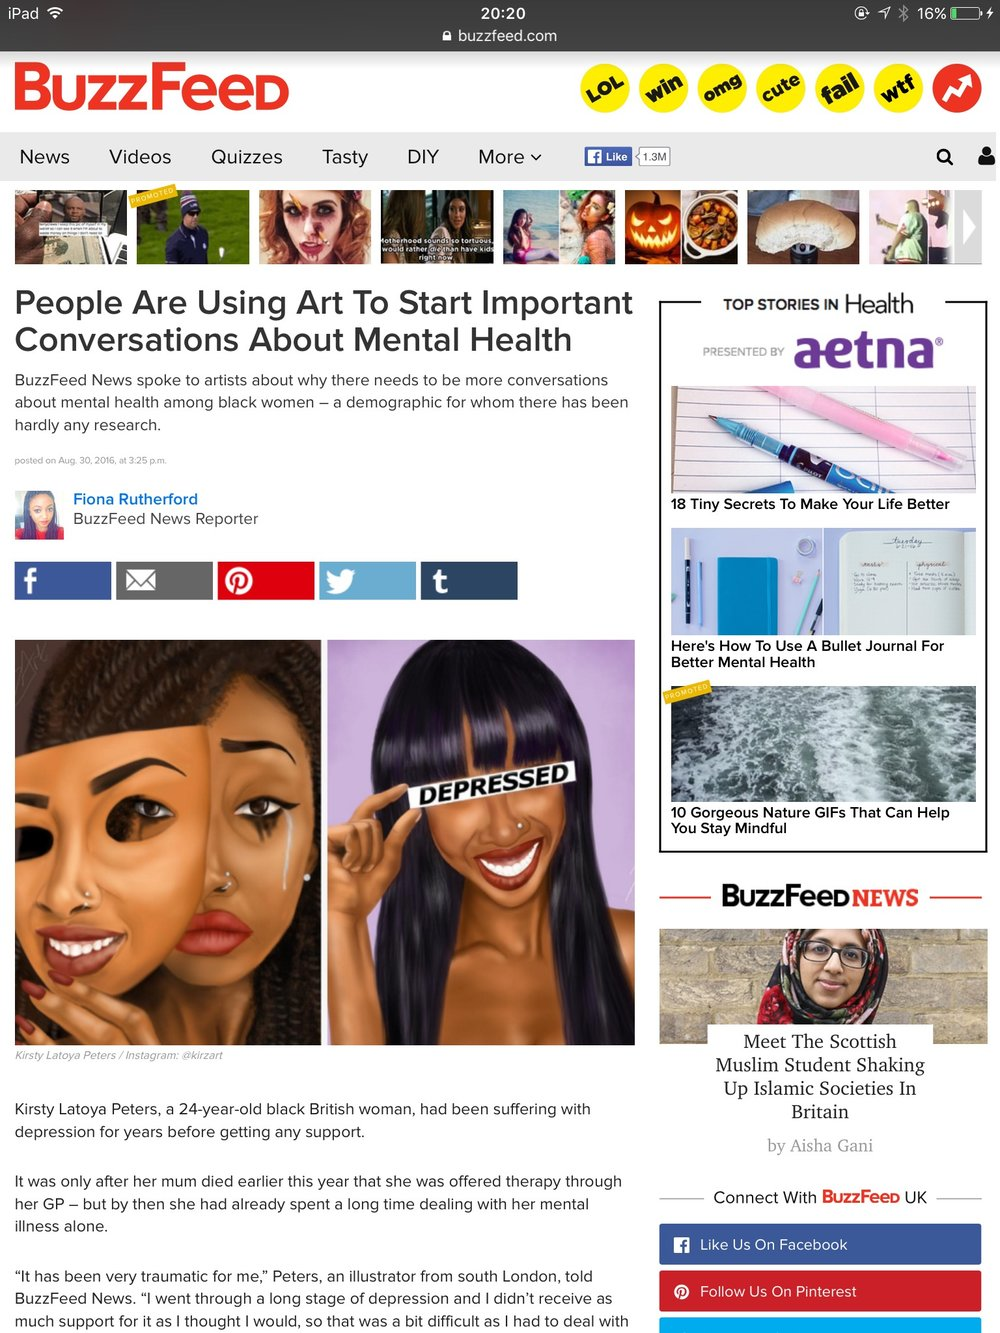 BUZZFEED - I was so happy to be contaced by Buzzfeed to discuss my story with mental health and how i use art to deal with it. Click the image or here to read.